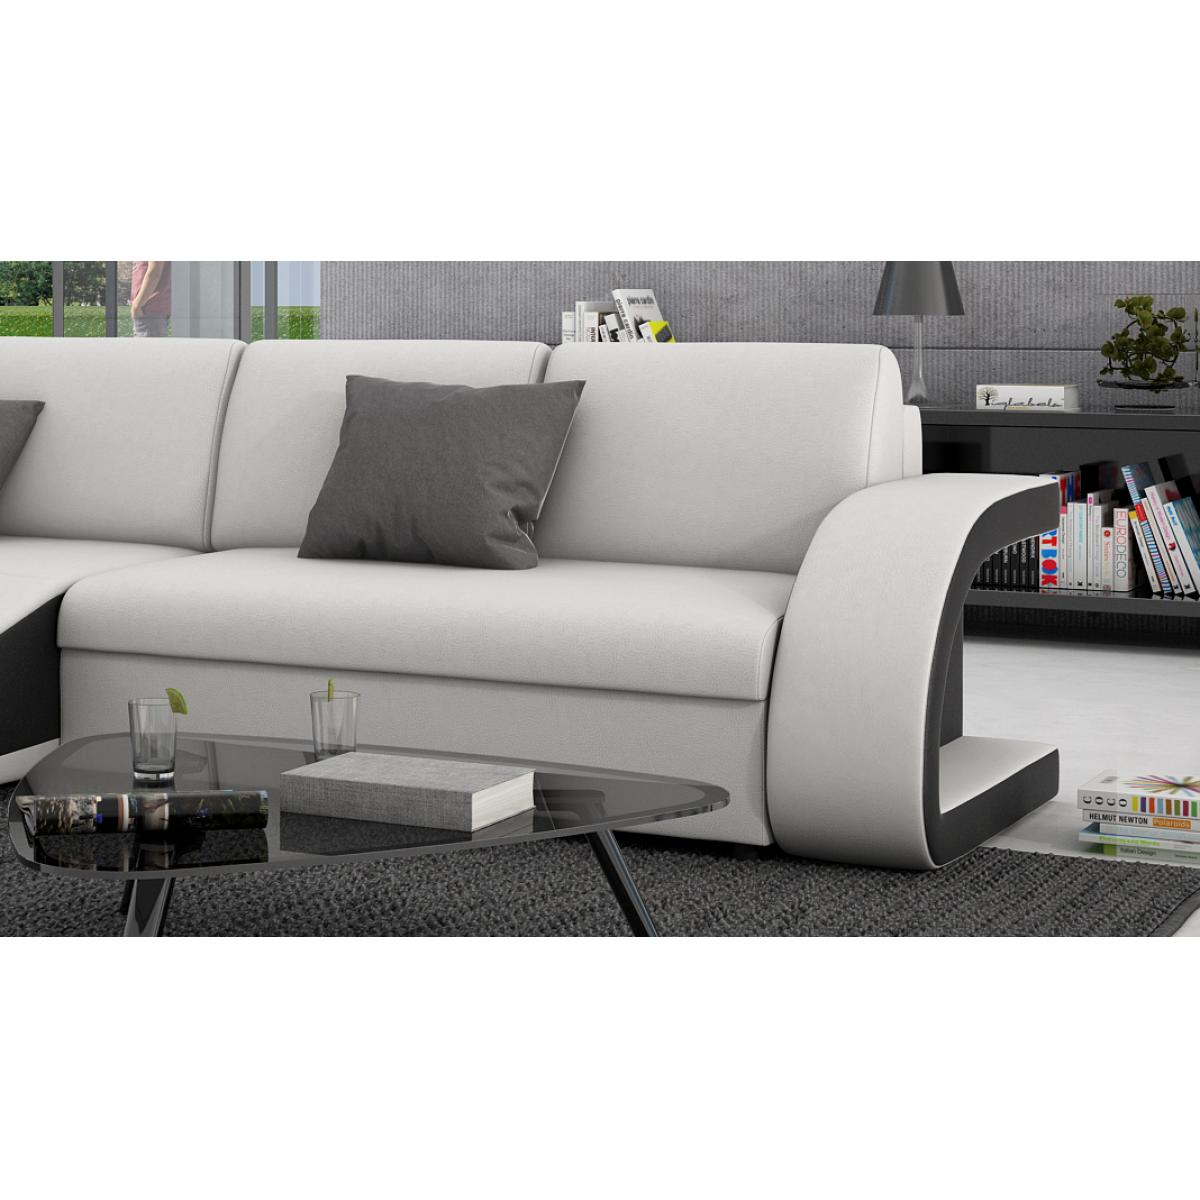 wohnlandschaft schlafsofa couch sofagarnitur sofa lounge schlafcouch wohnzimmer ebay. Black Bedroom Furniture Sets. Home Design Ideas